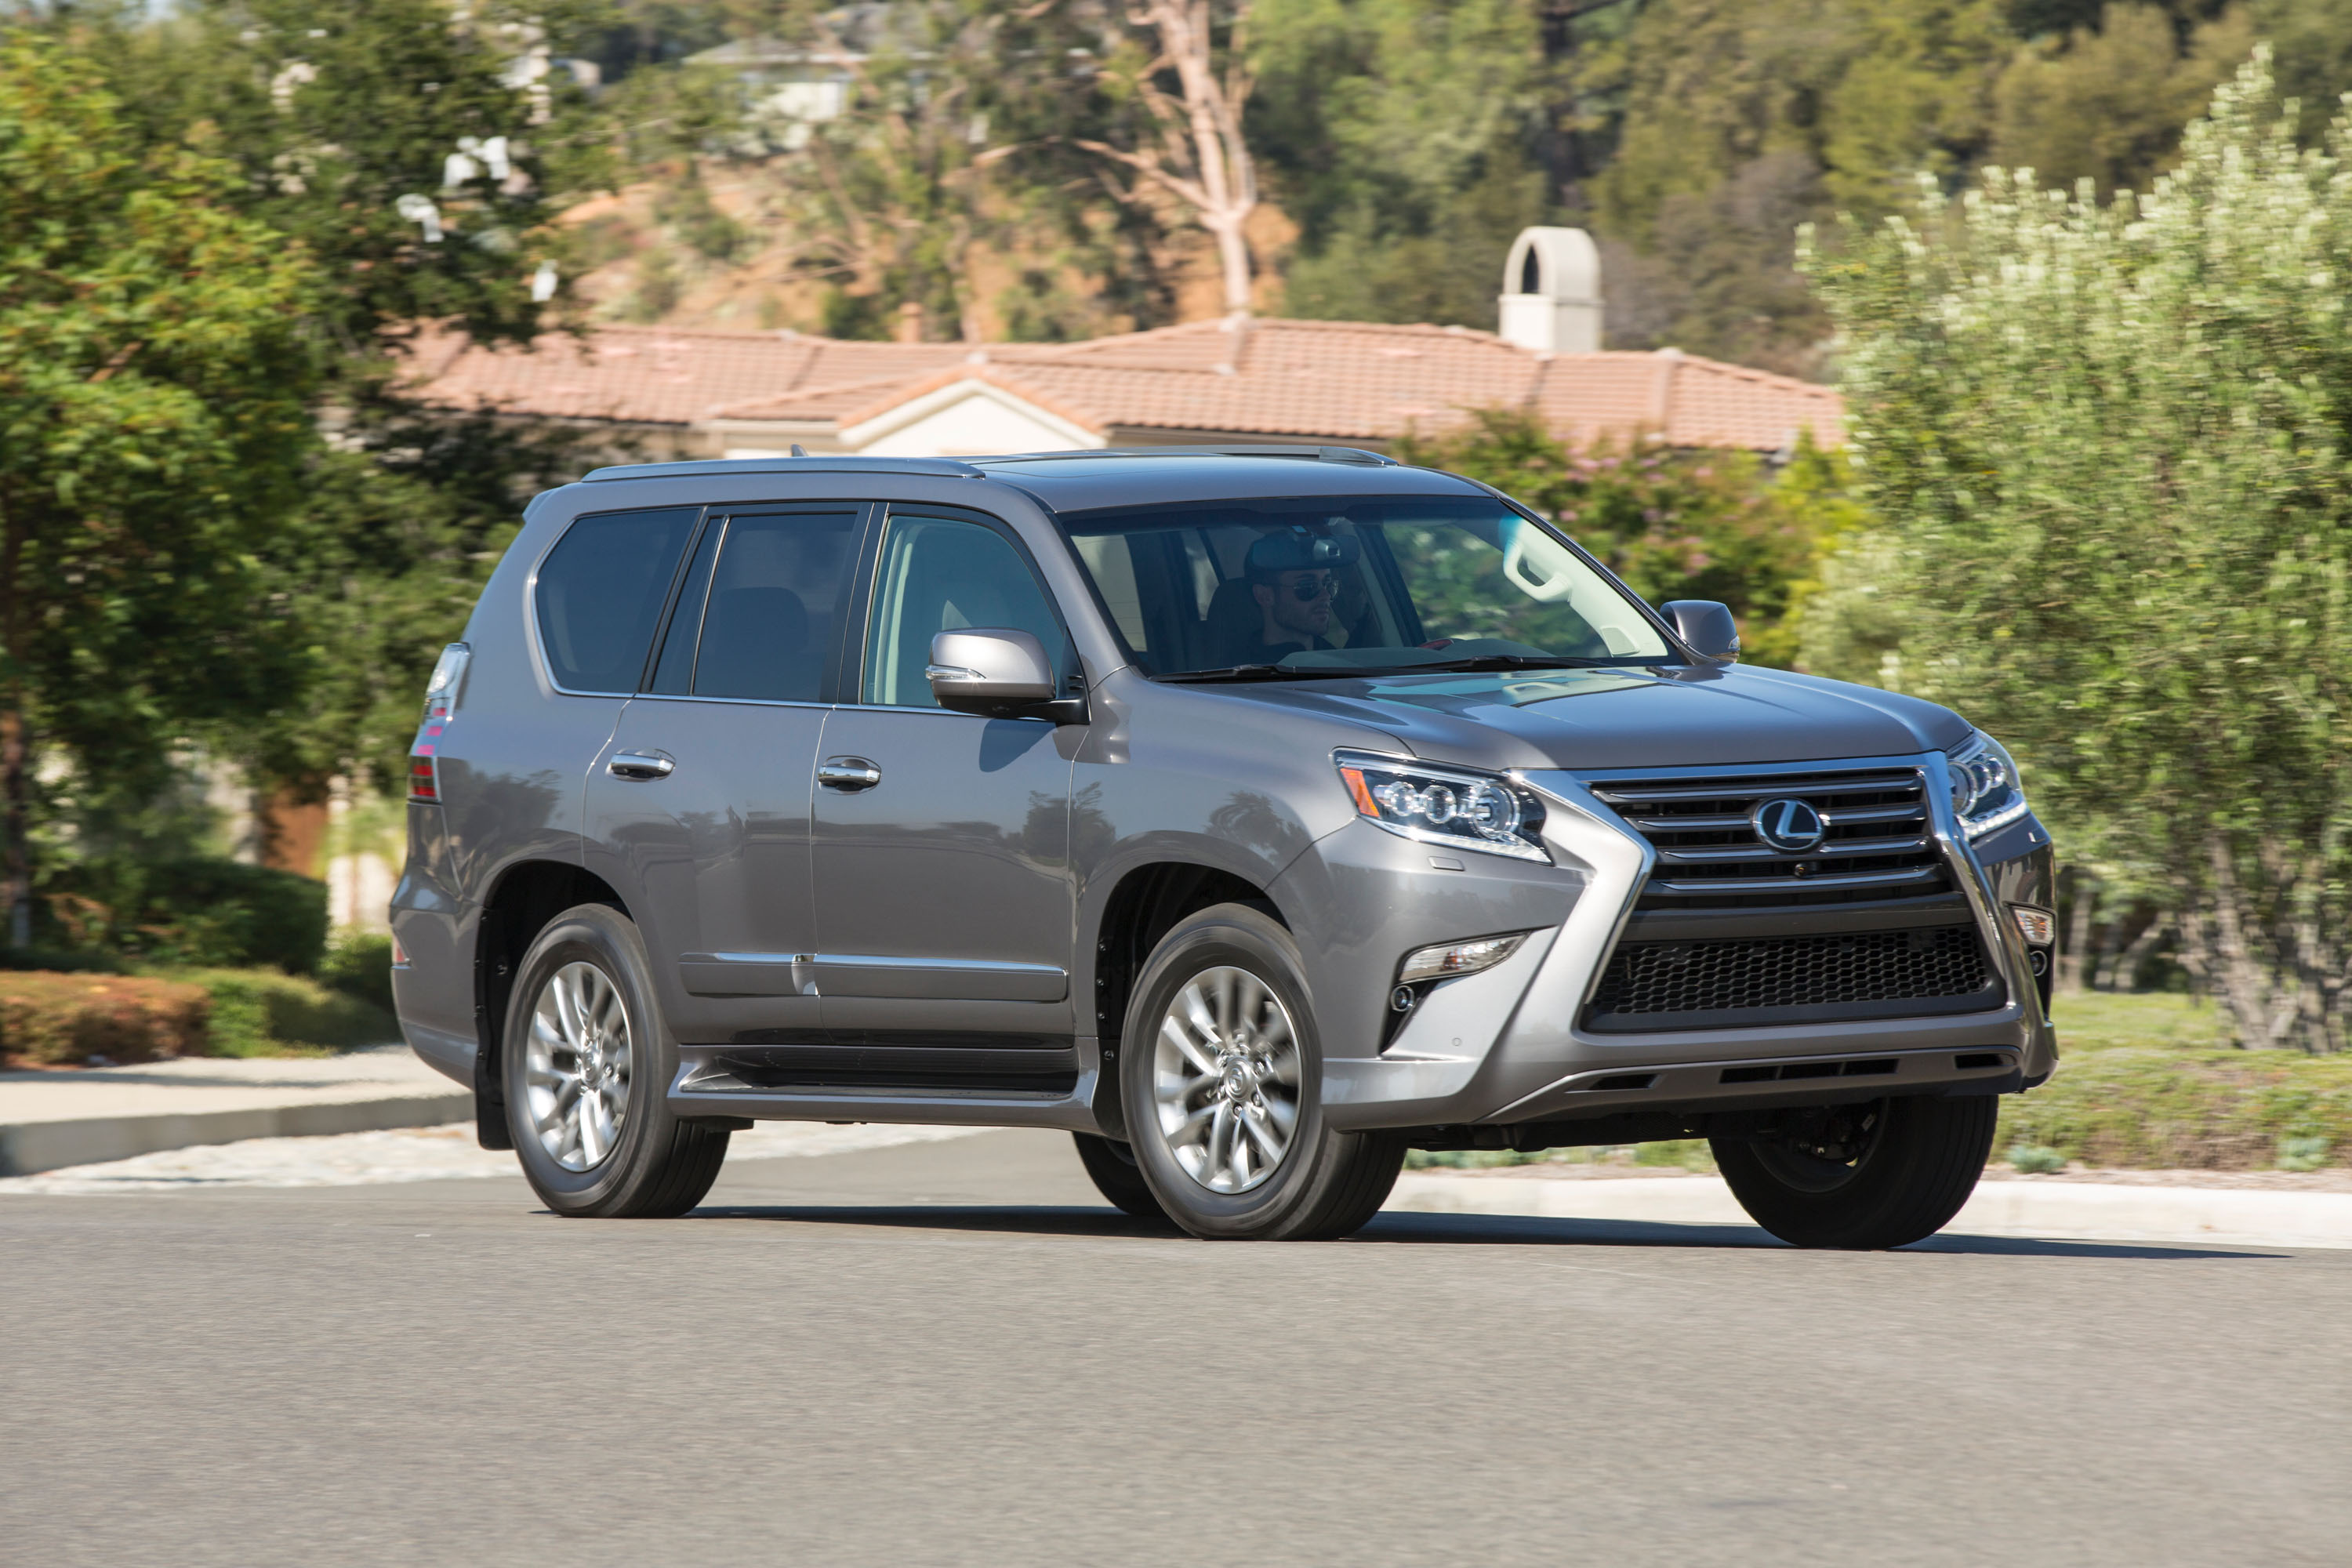 hooning the countryside in a 2015 lexus gx 460. Black Bedroom Furniture Sets. Home Design Ideas